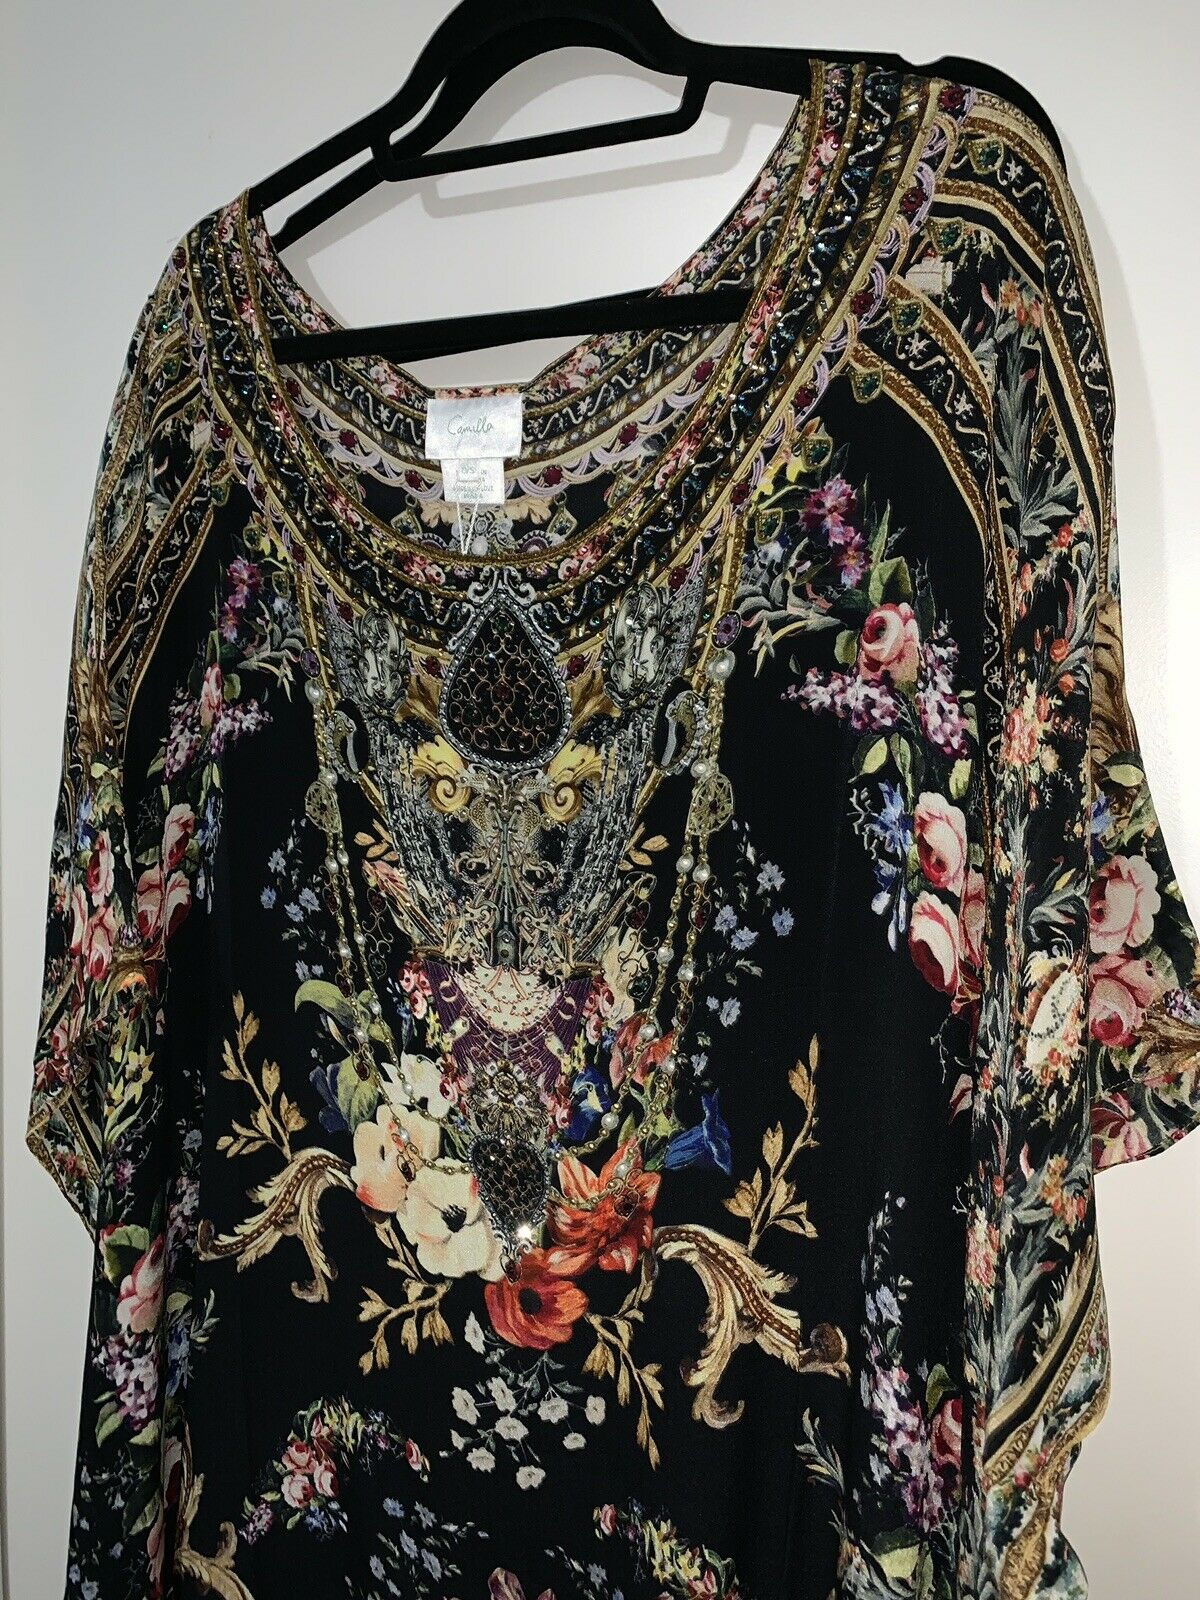 Camilla Friend In Flora Round Neck Kaftan BNWT